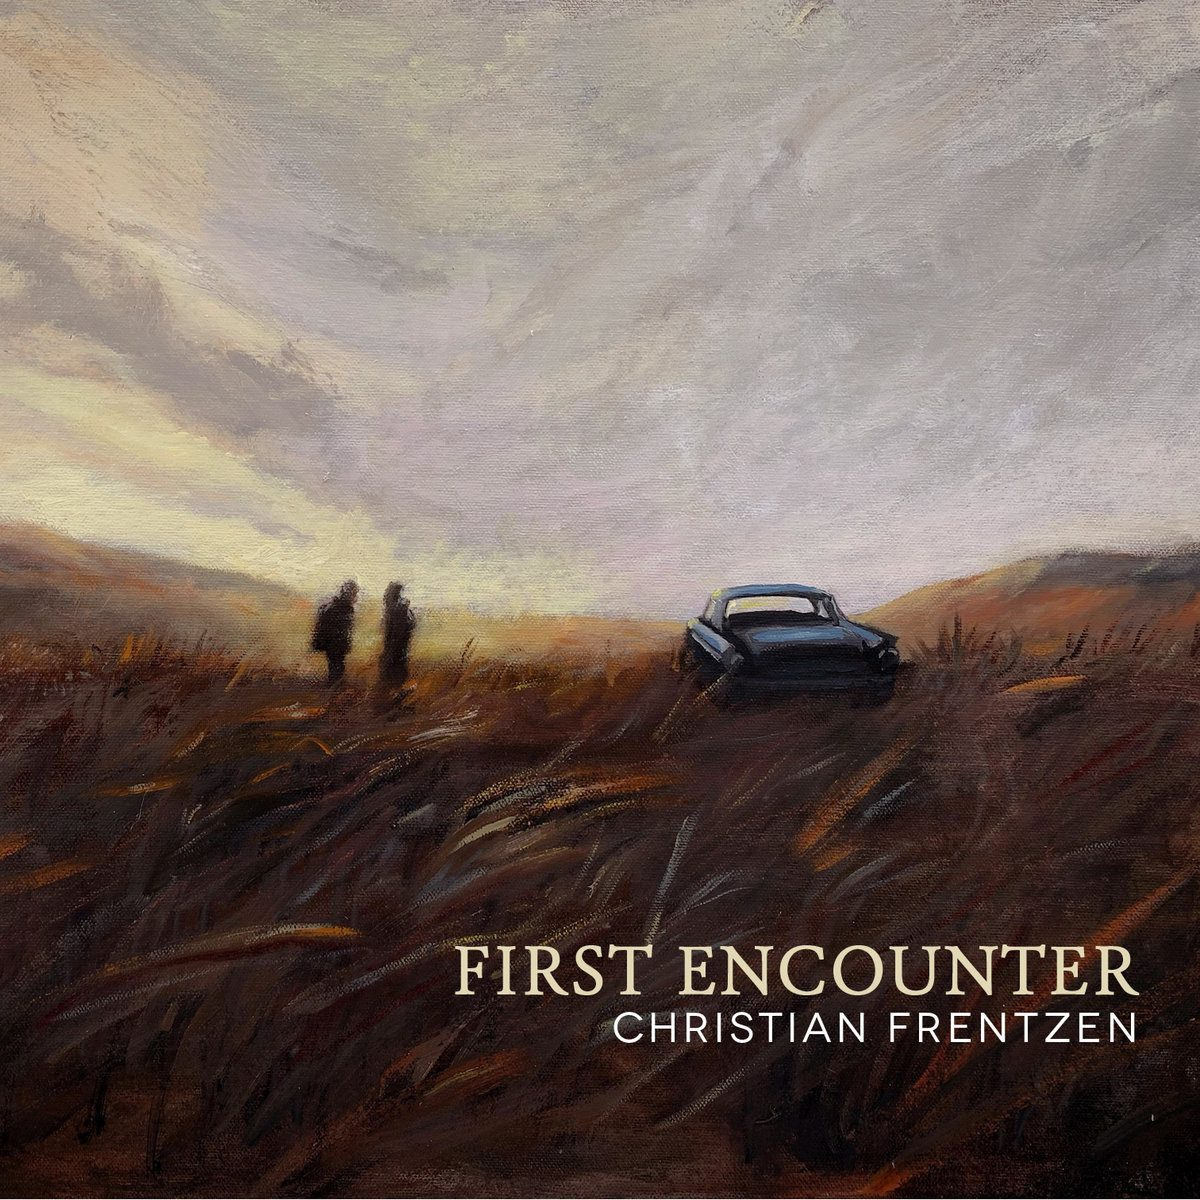 Christian Frentzen Silvio Morger Roger Kintopf Paul Heller Andy Haderer Dino Soldo Norbert Scholly Fritz Dinter Lukas Lohner LOFT Köln Cologne Aufnahme Recorded First Encounter